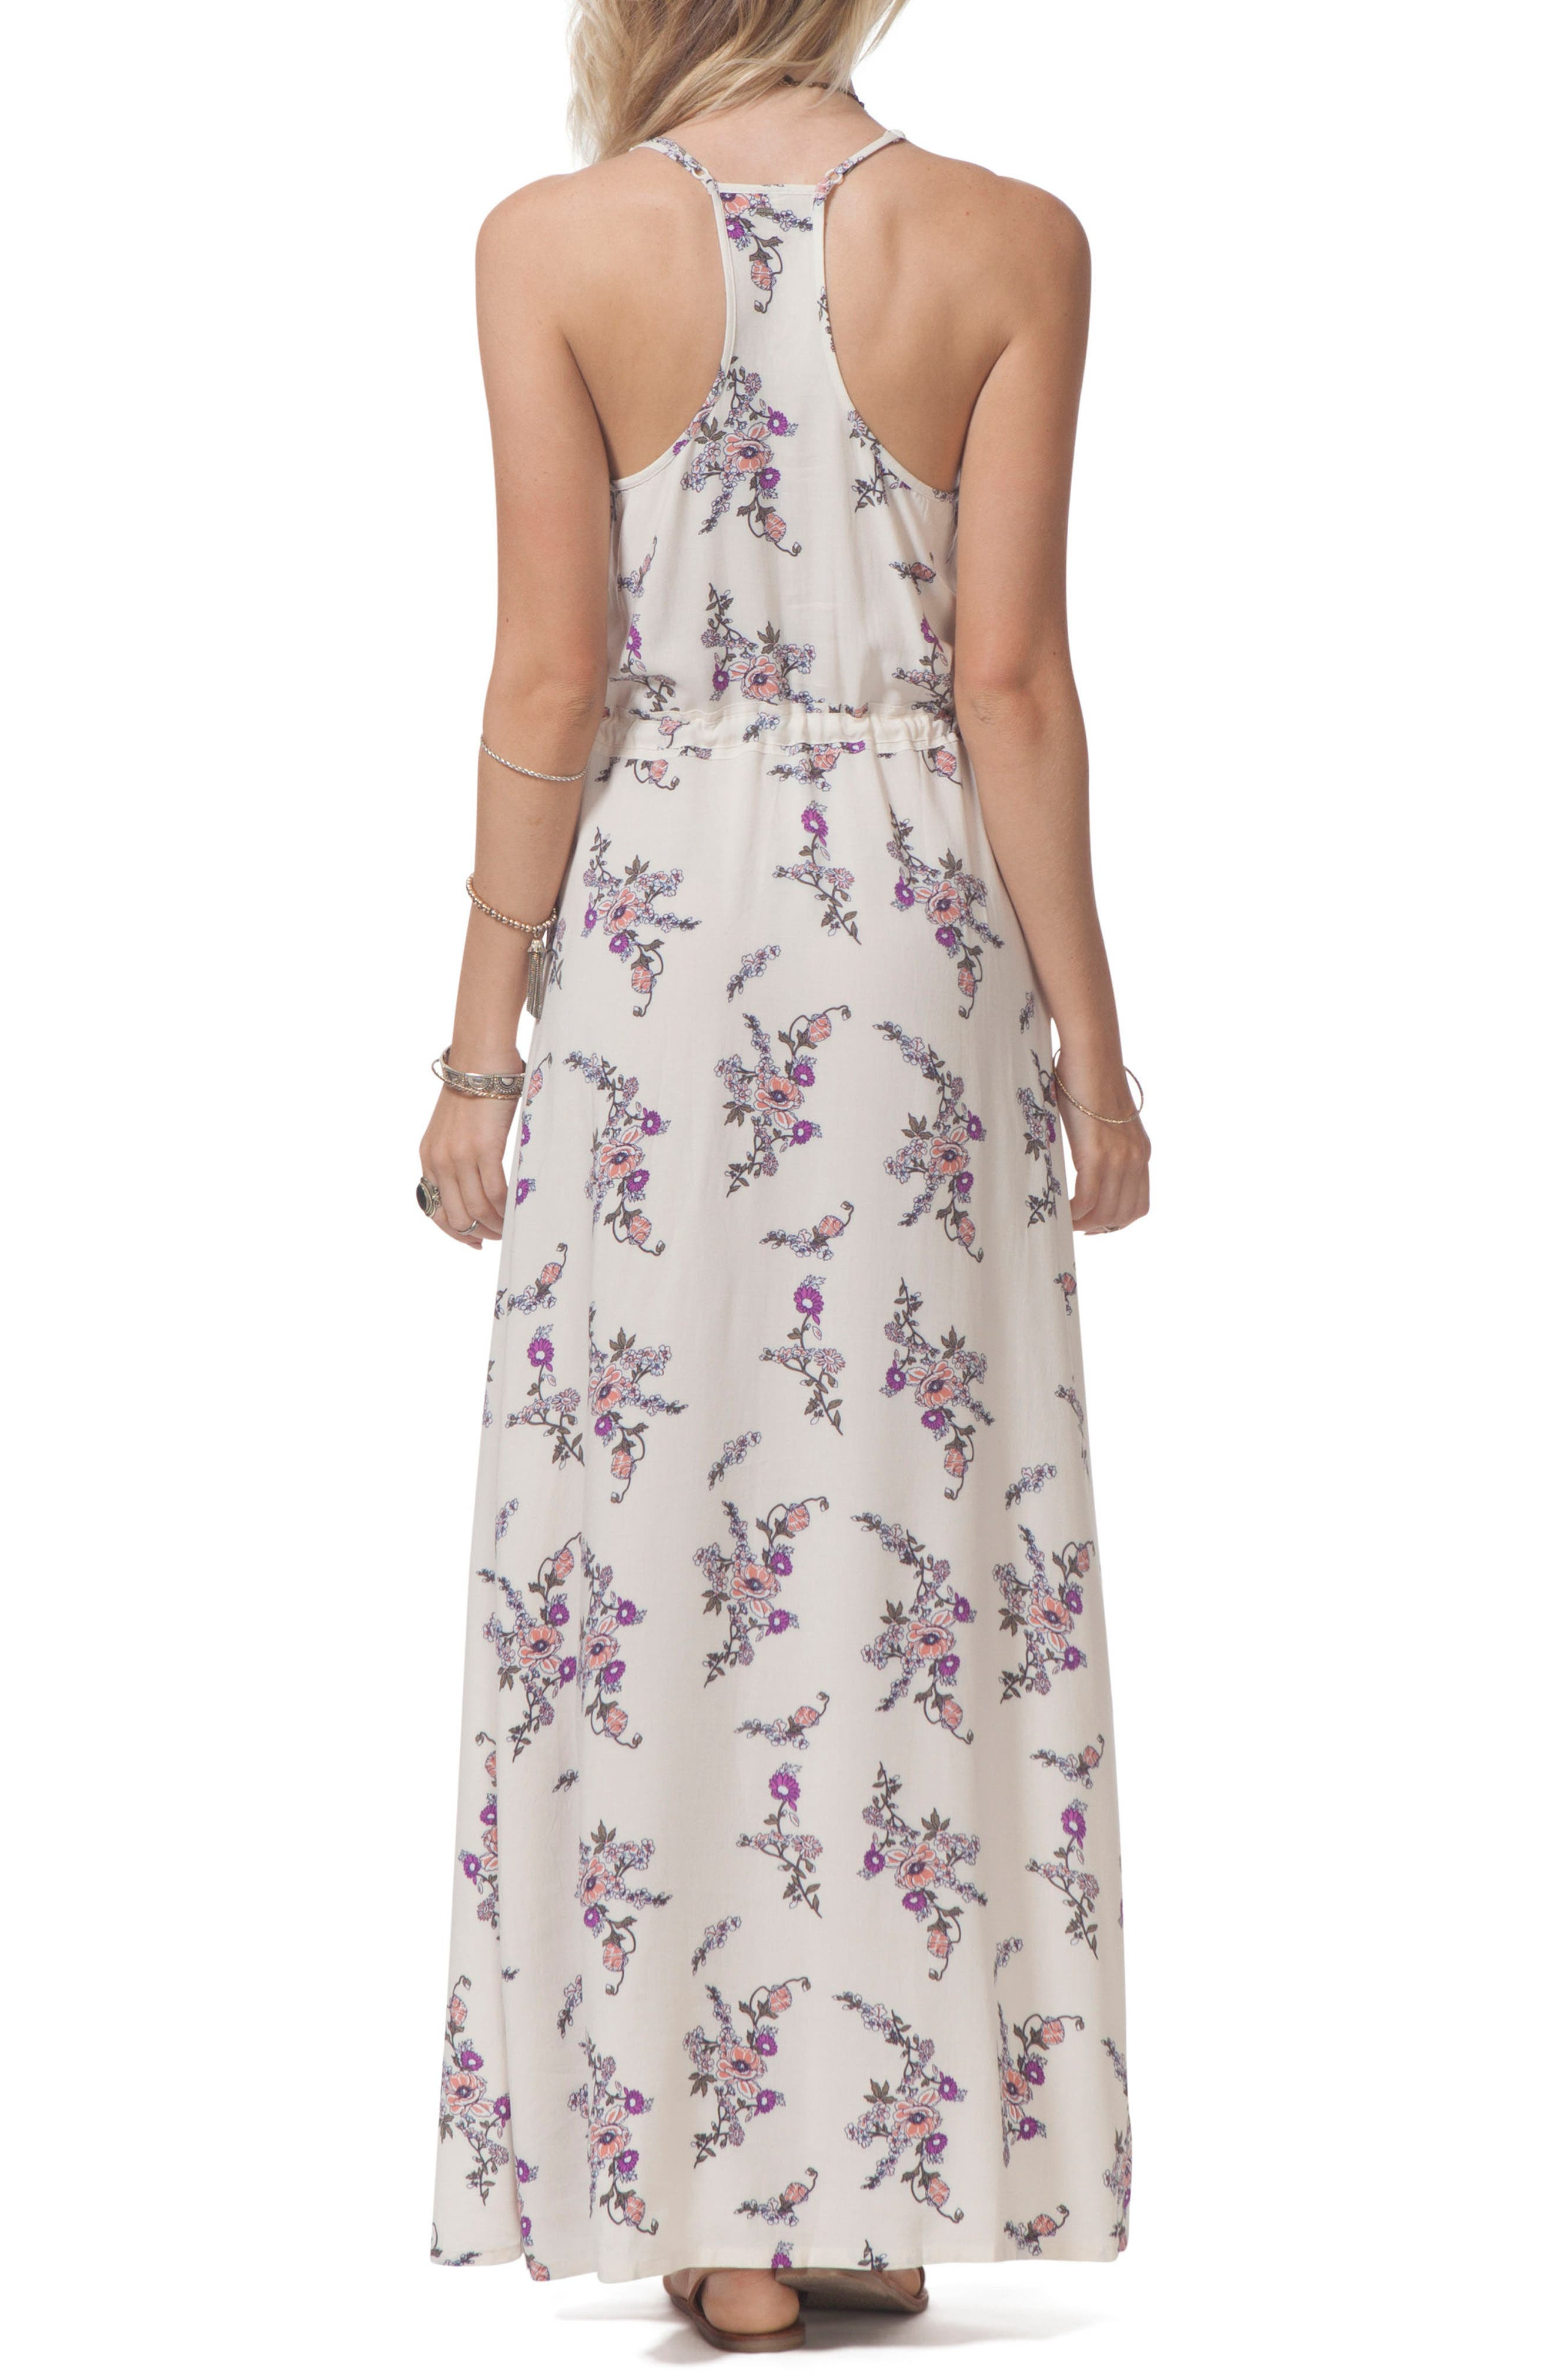 Malia Floral Print Maxi Dress,                             Alternate thumbnail 2, color,                             111